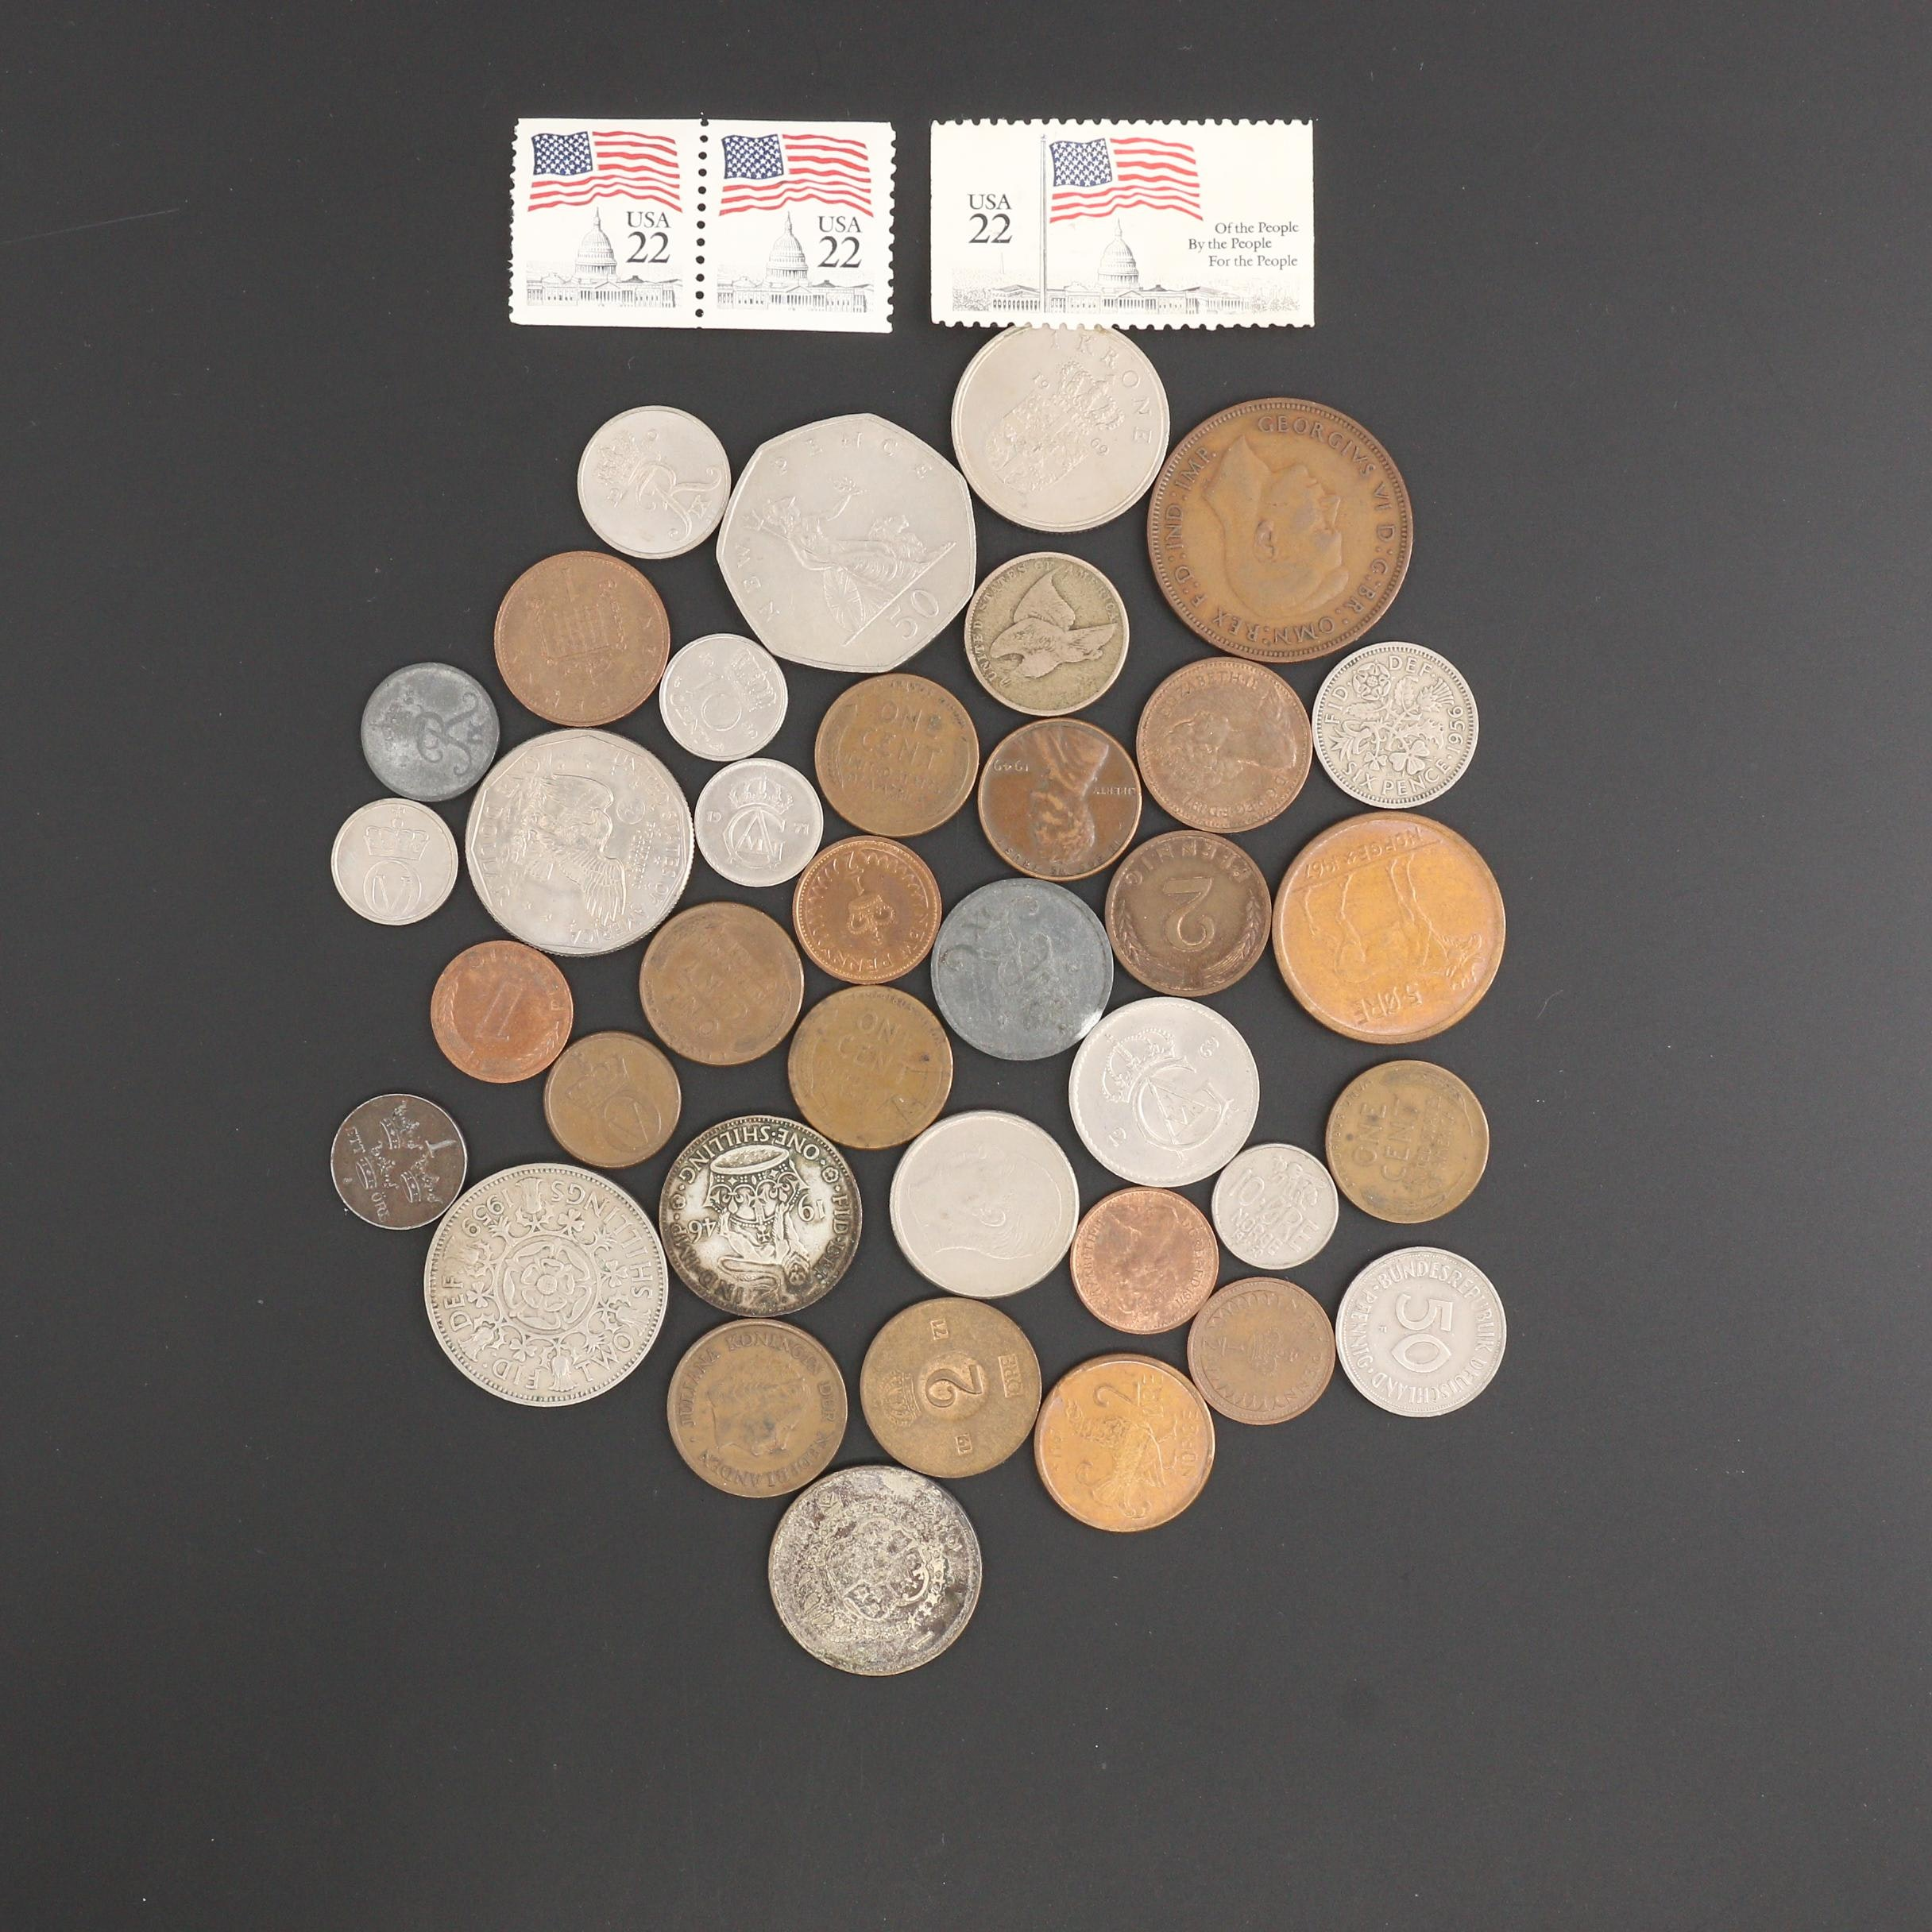 Assortment of Vintage Foreign and U.S. Coins